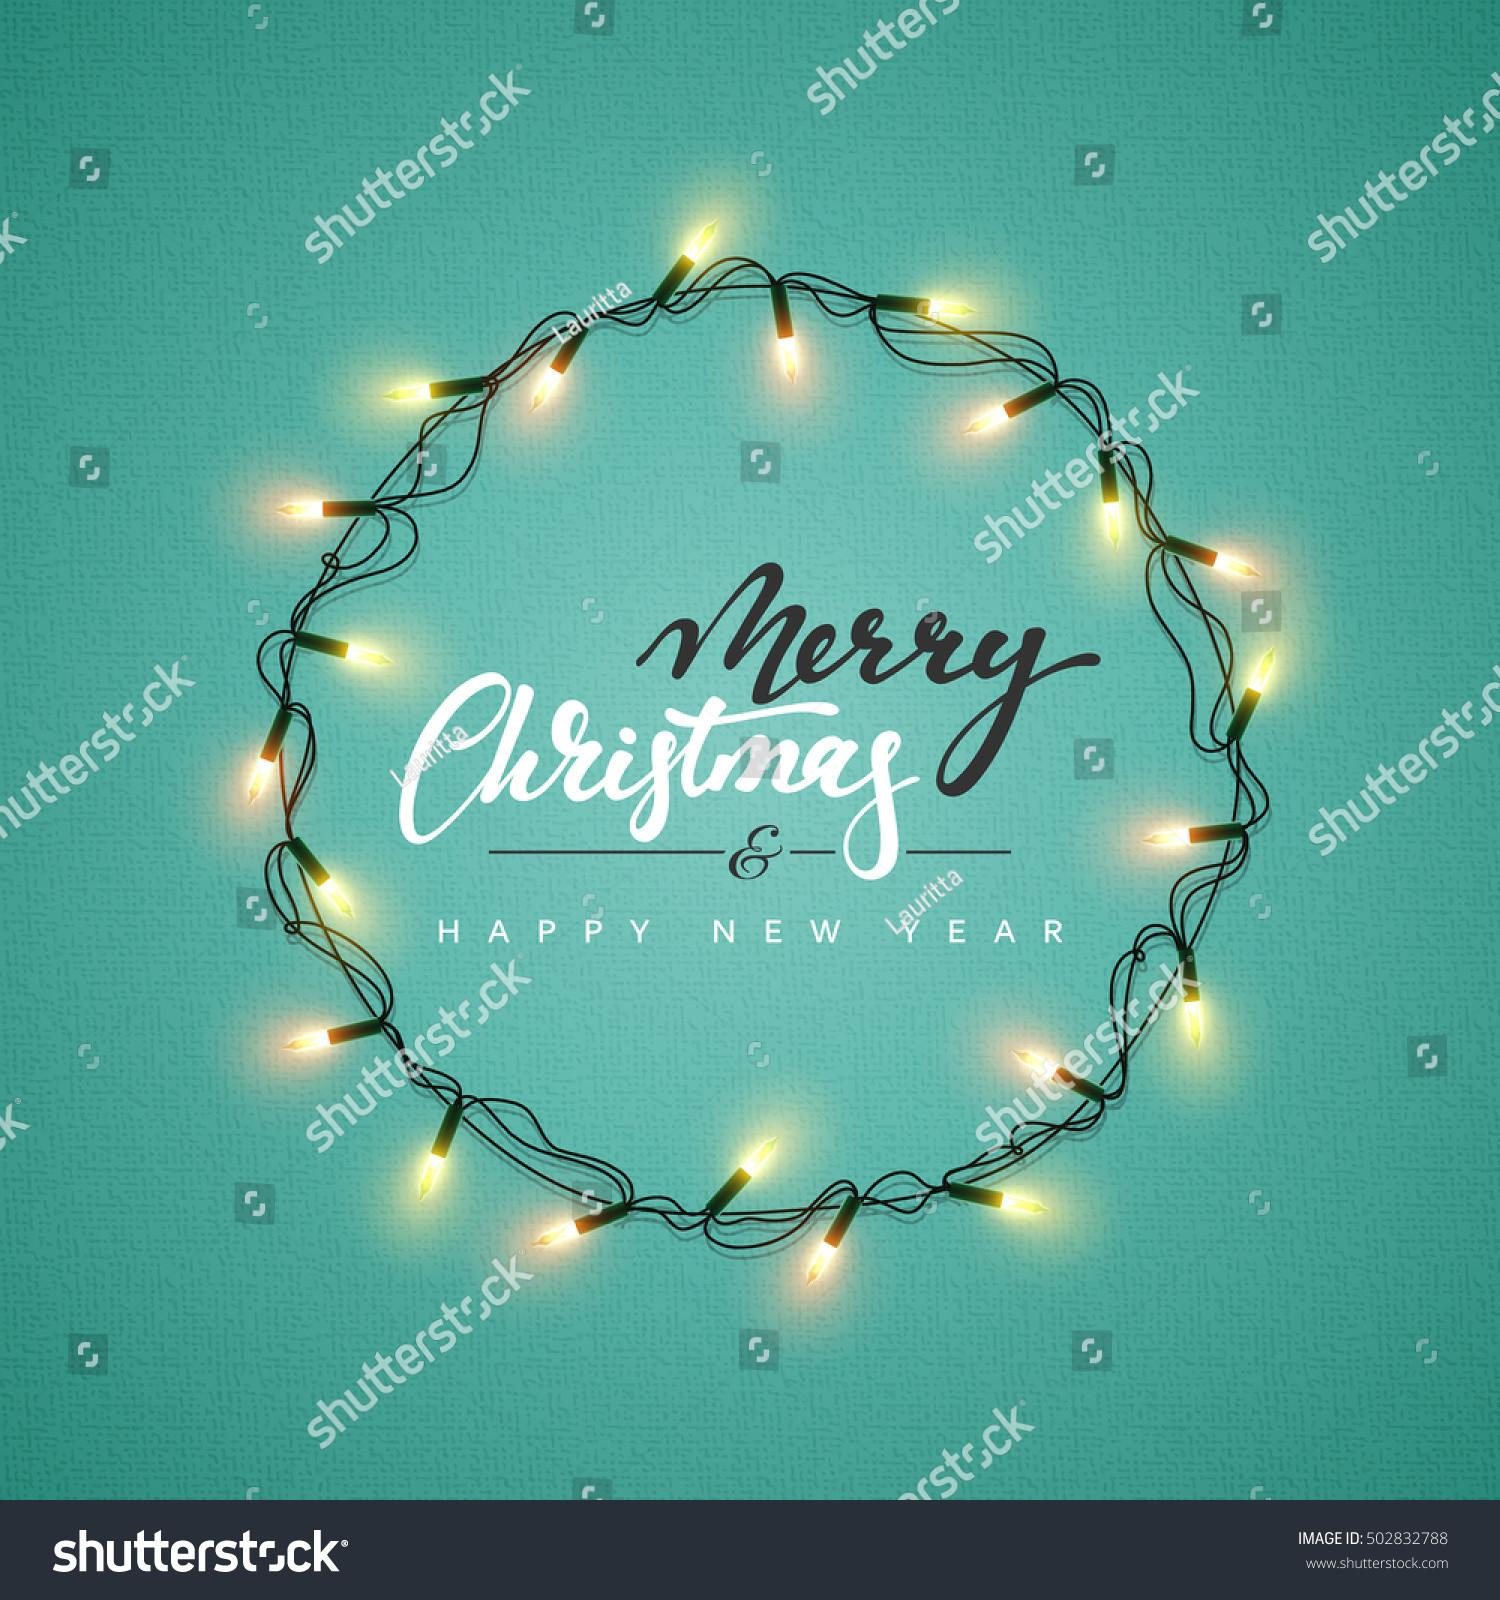 Glowing Christmas Lights Wreath Xmas Holiday Stock Vector